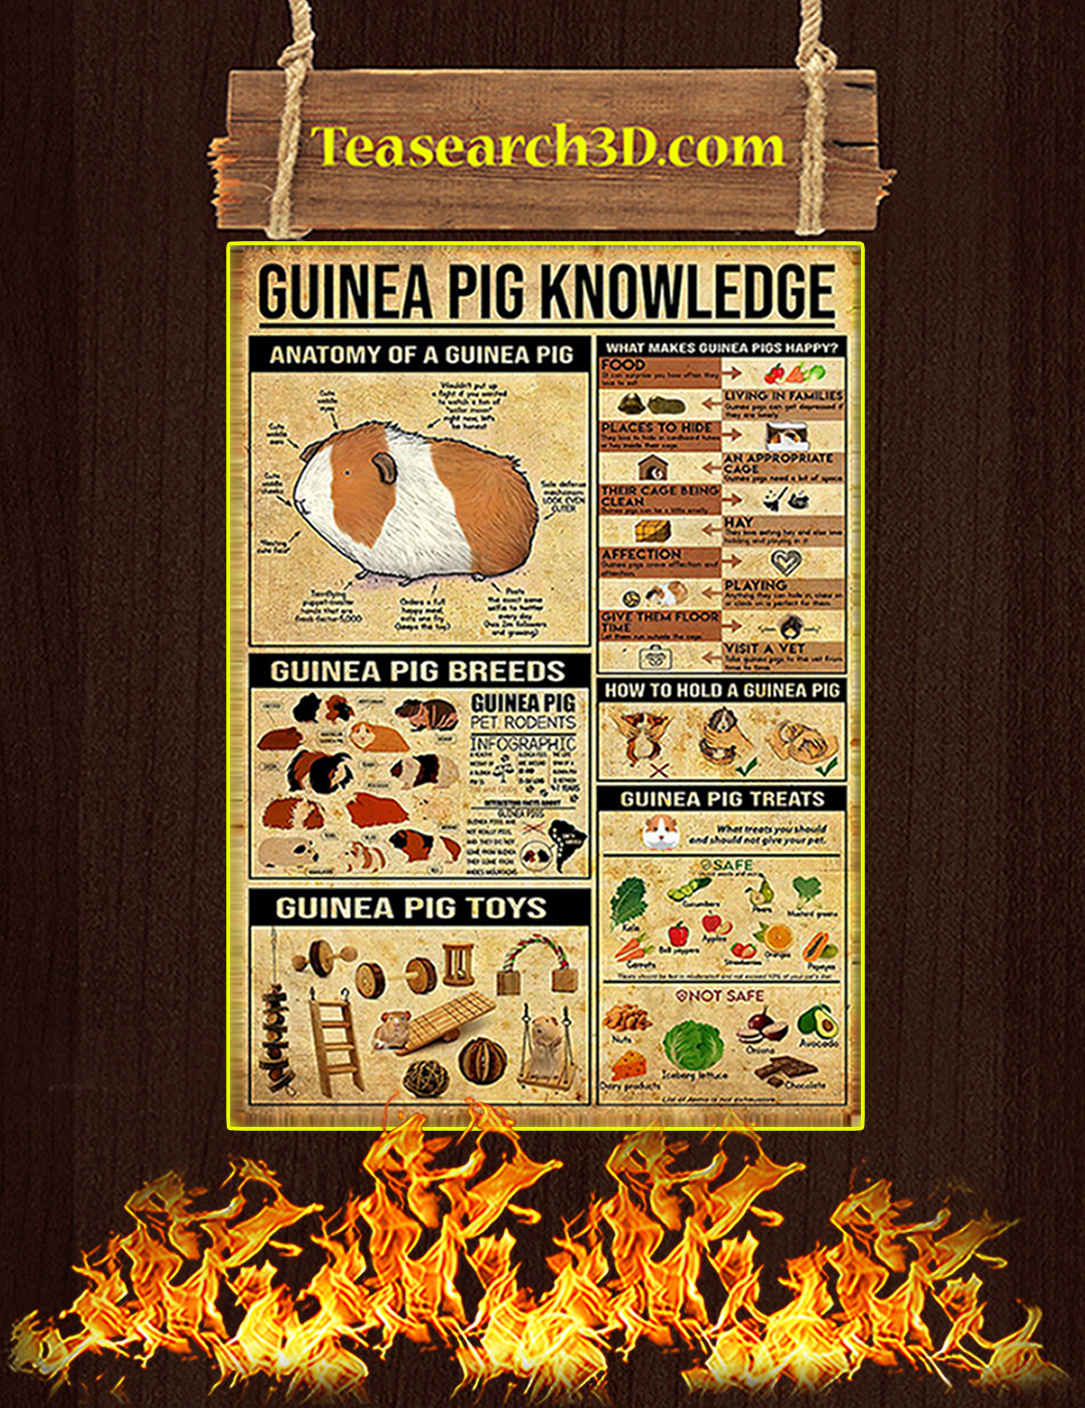 Guinea pig knowledge poster A2